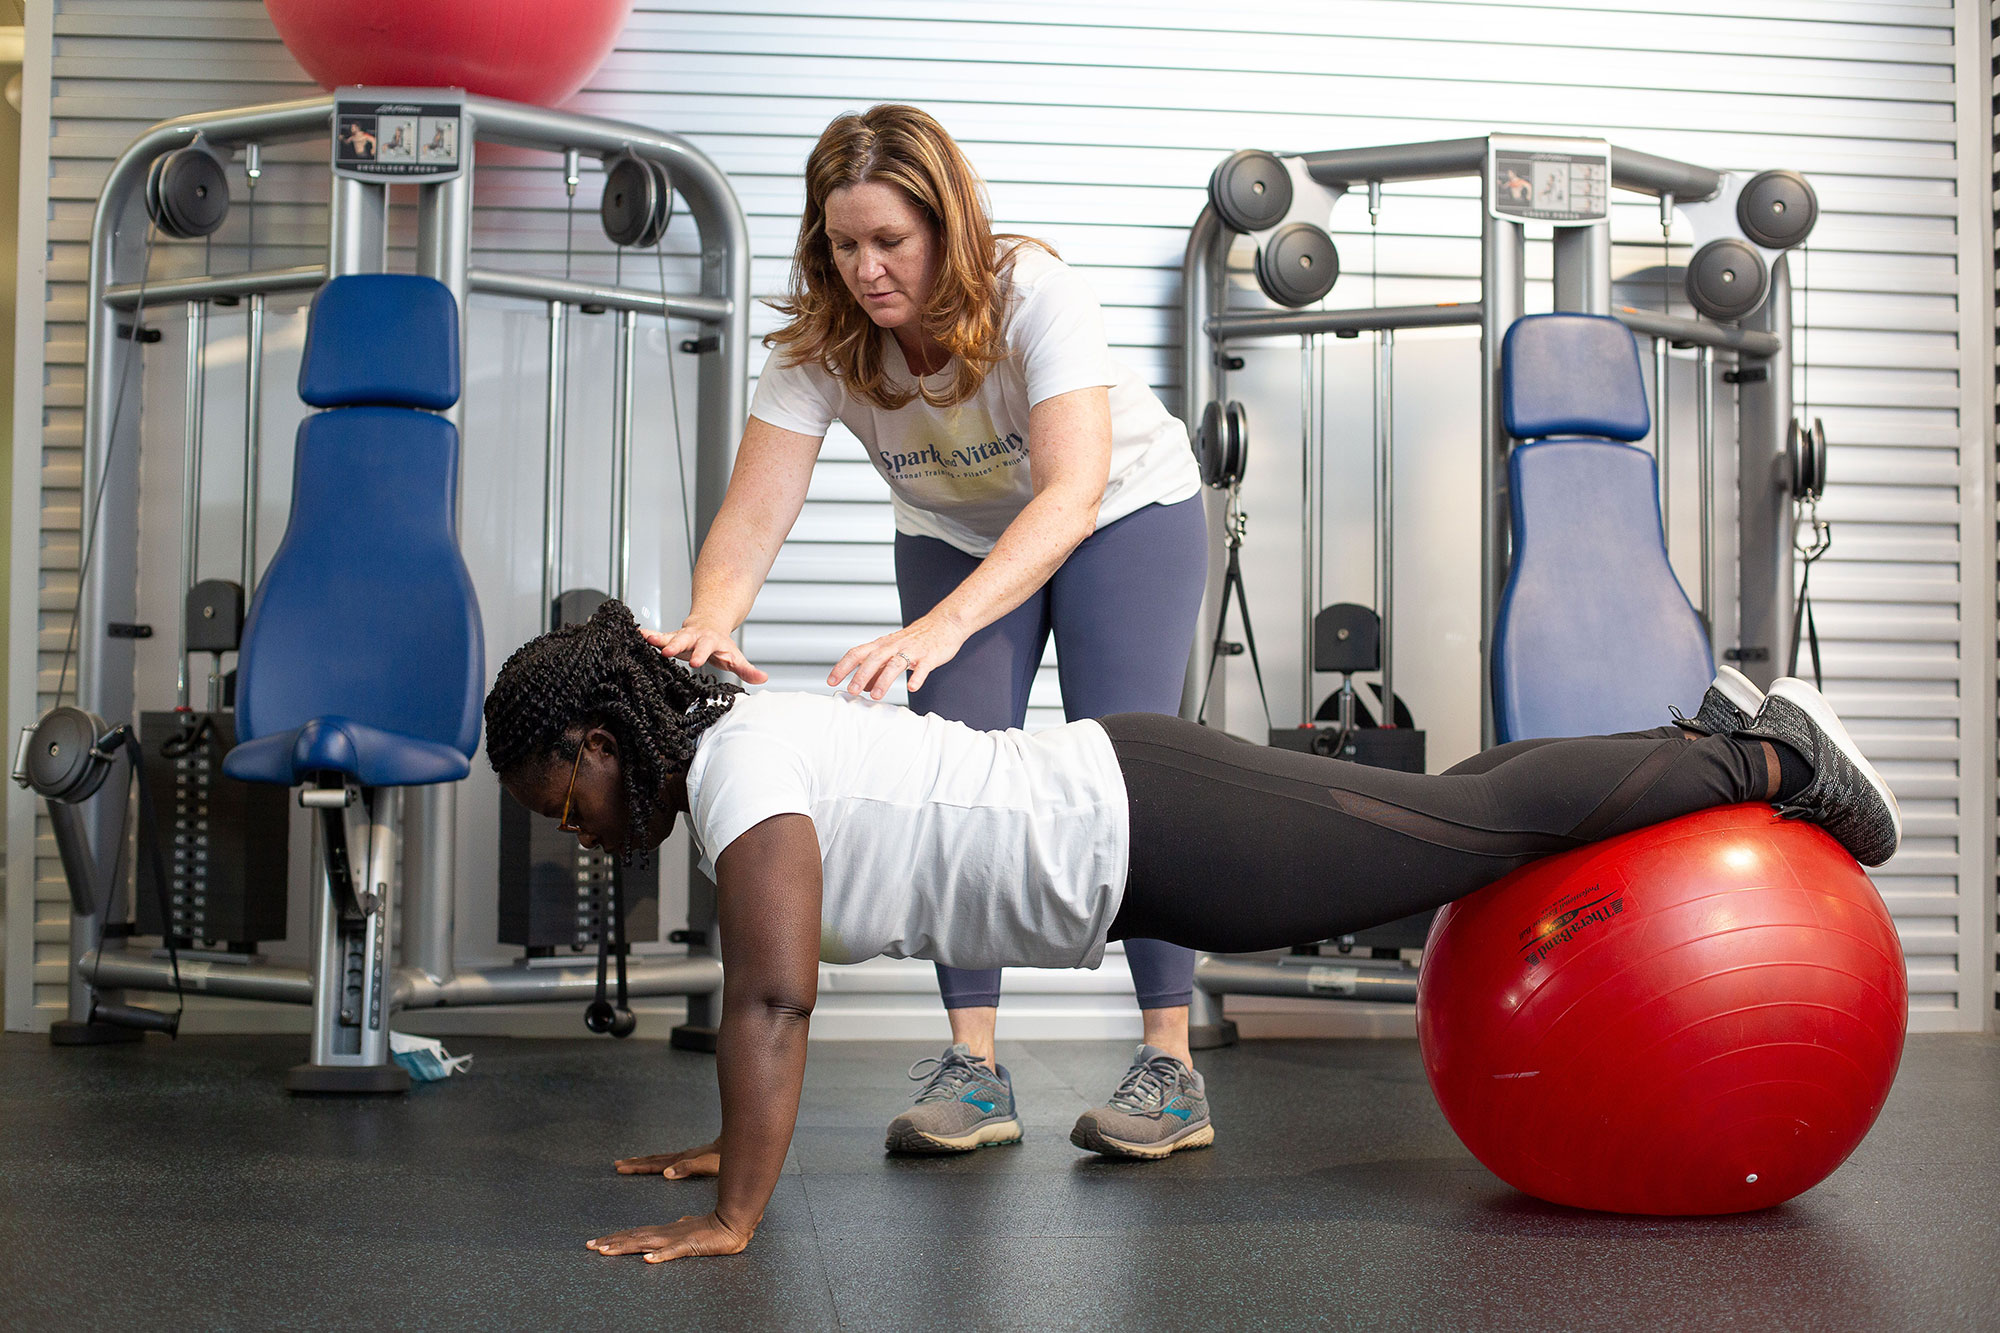 Personal training at Spark and Vitality, a Pennsylvania wellness company